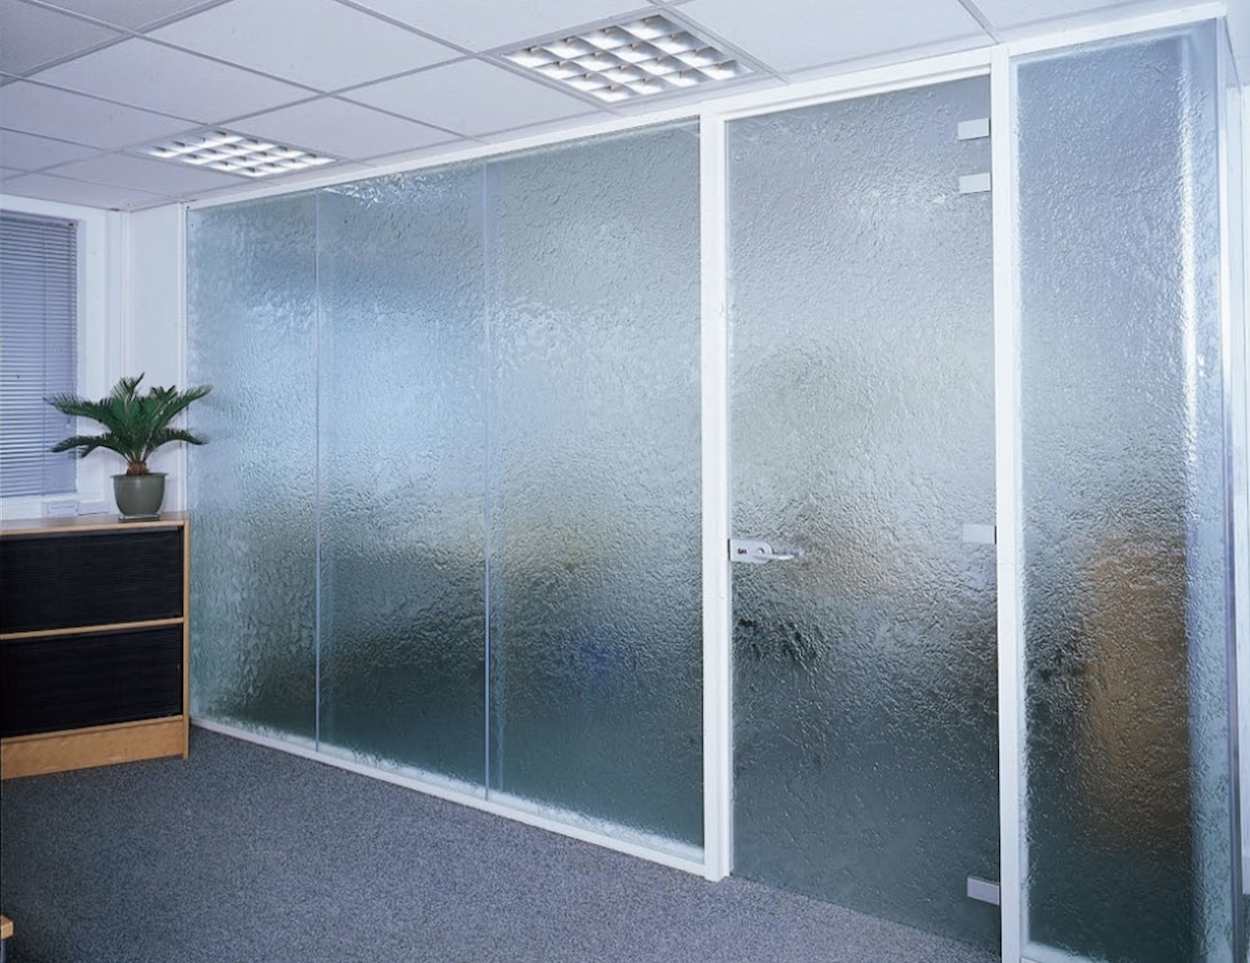 Hinged glass frame swing doors can be a pair or curved configuration